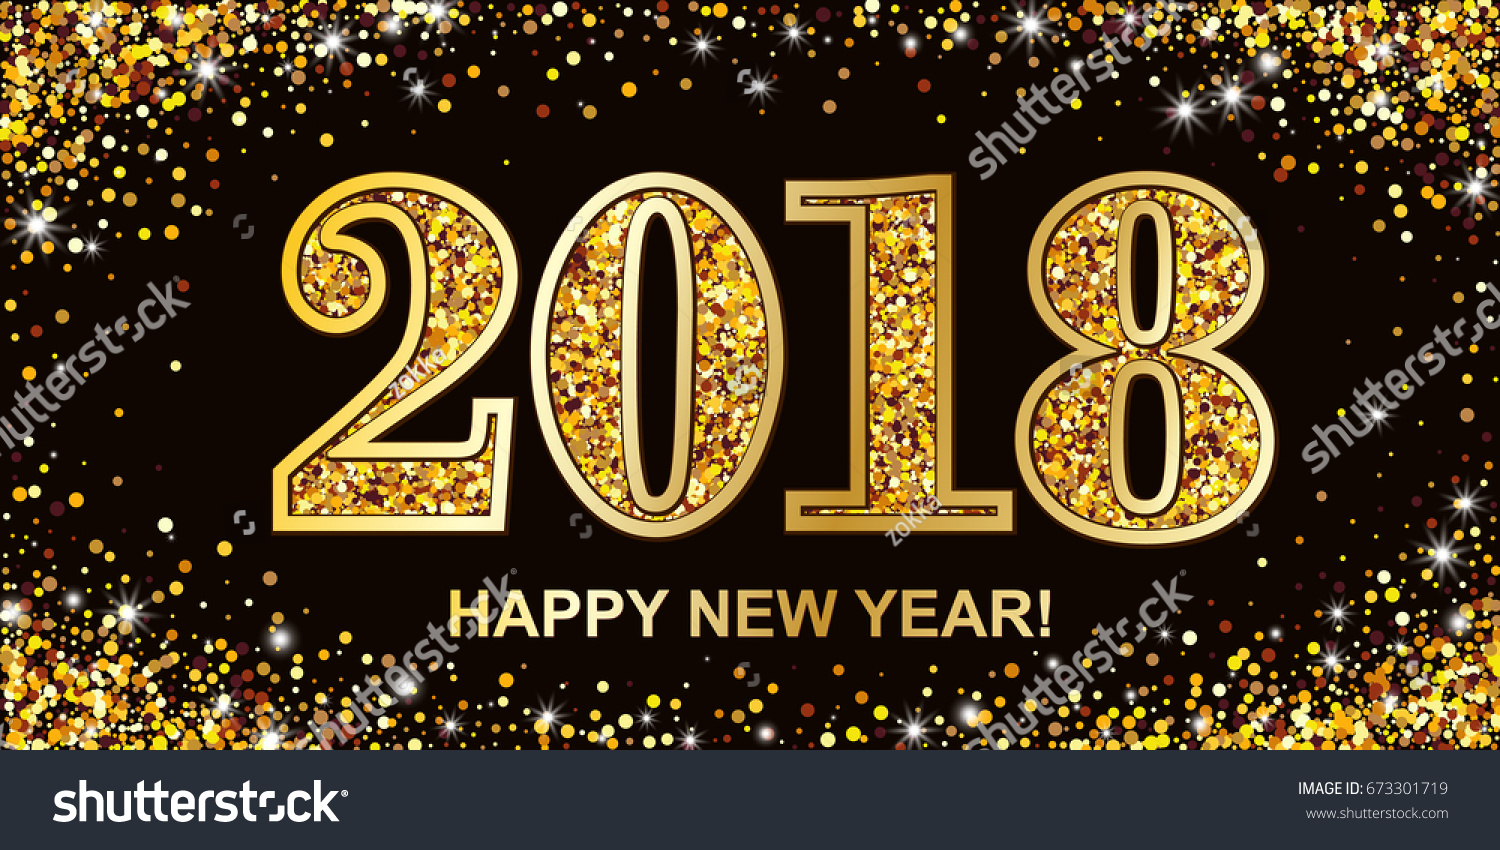 2018 new year greeting card with gold numbers and scattered golden circles on black background